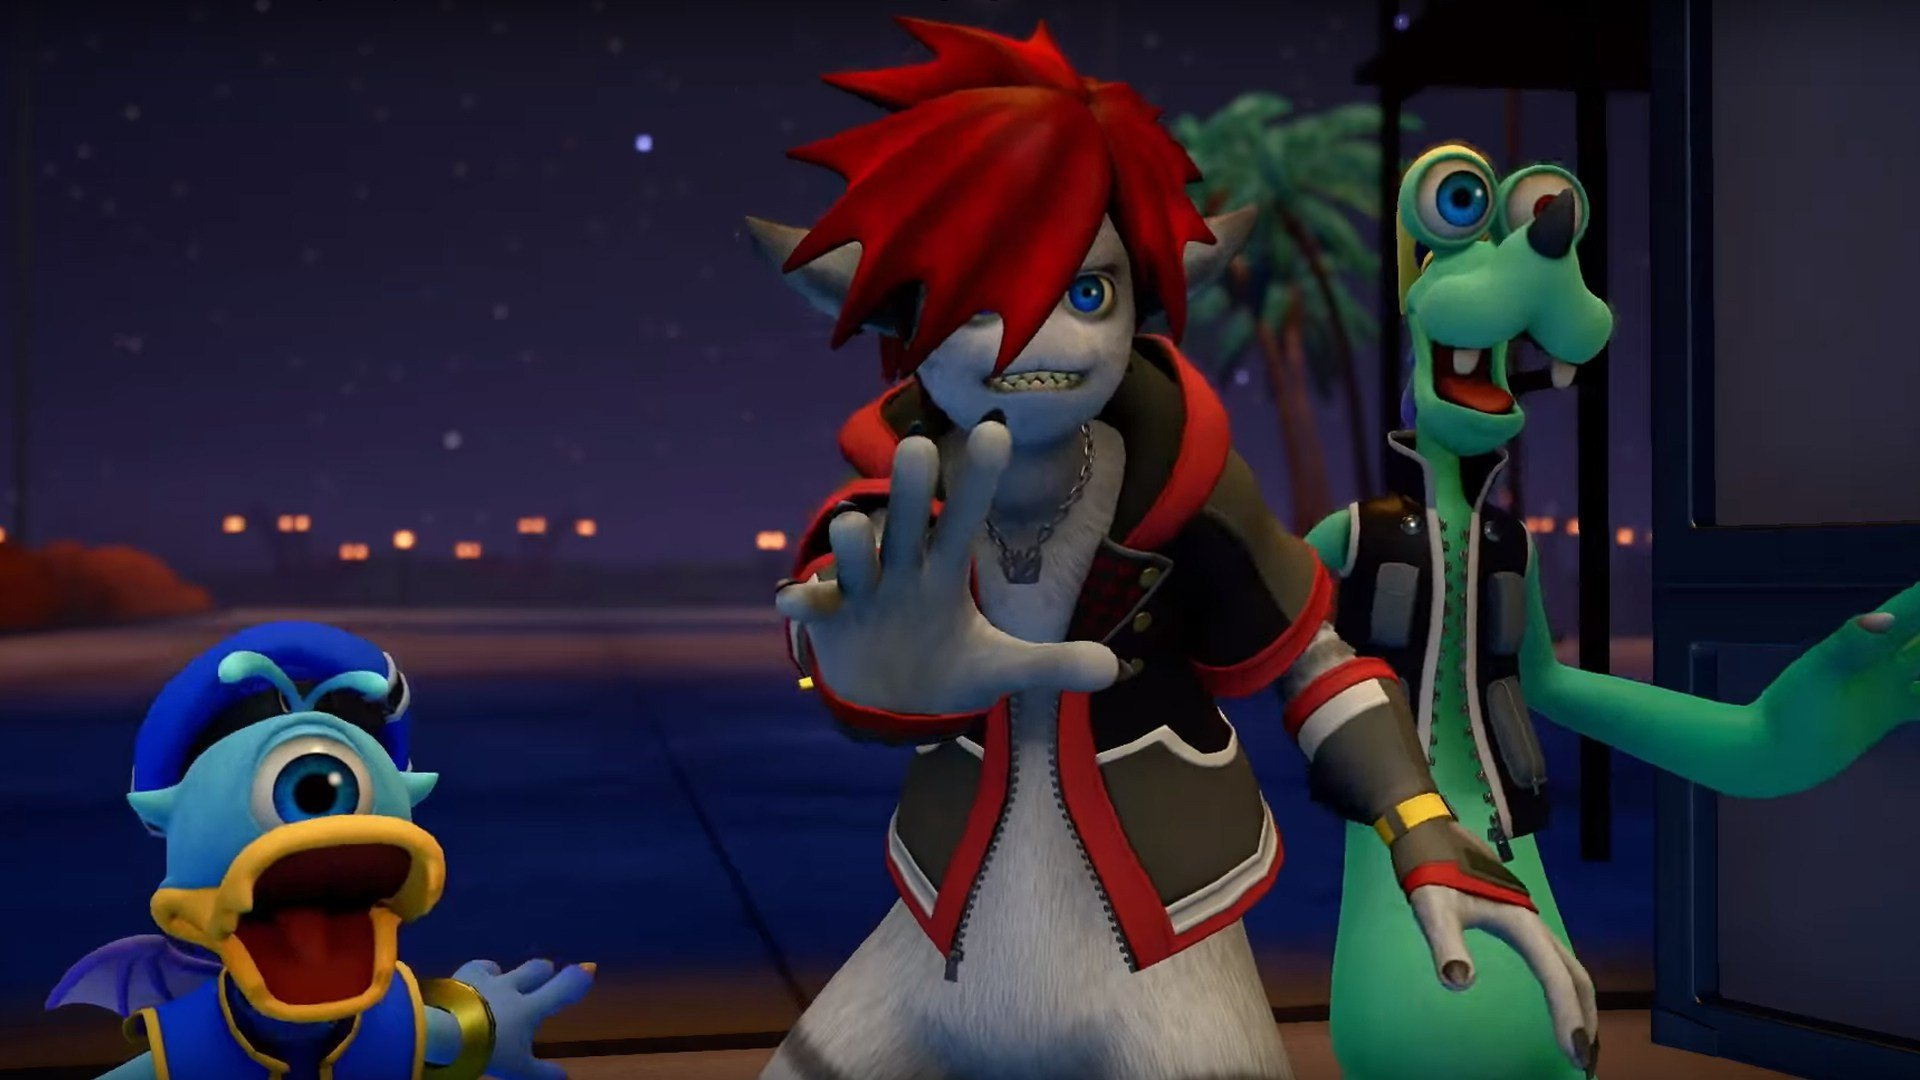 Square Enix is still saying Kingdom Hearts will be ready by the end